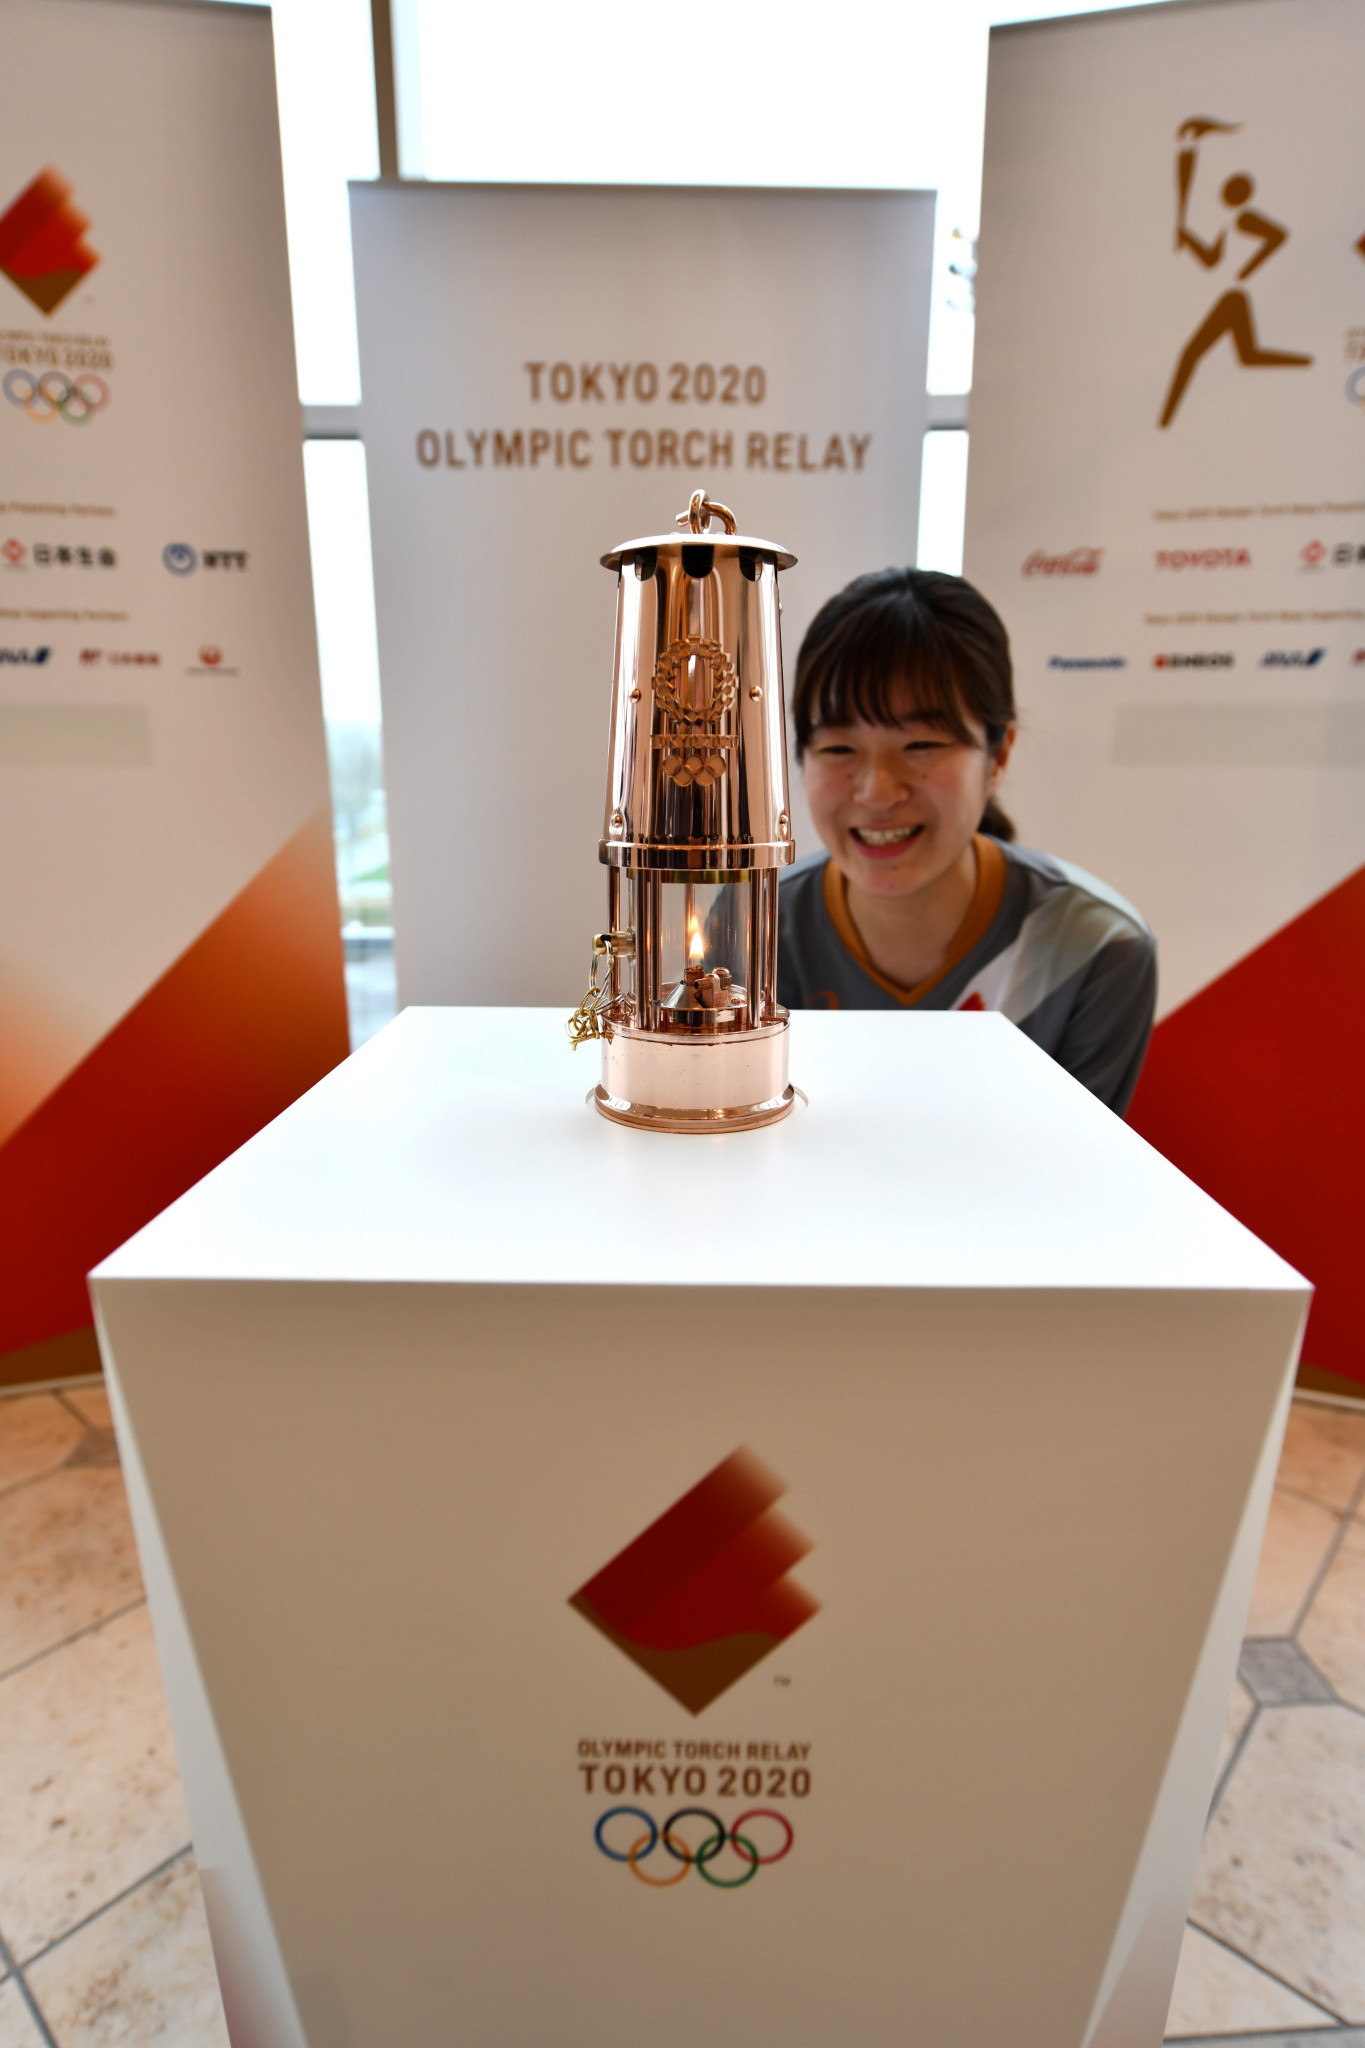 The Flame remains on display despite the Olympic postponement ©Getty Images